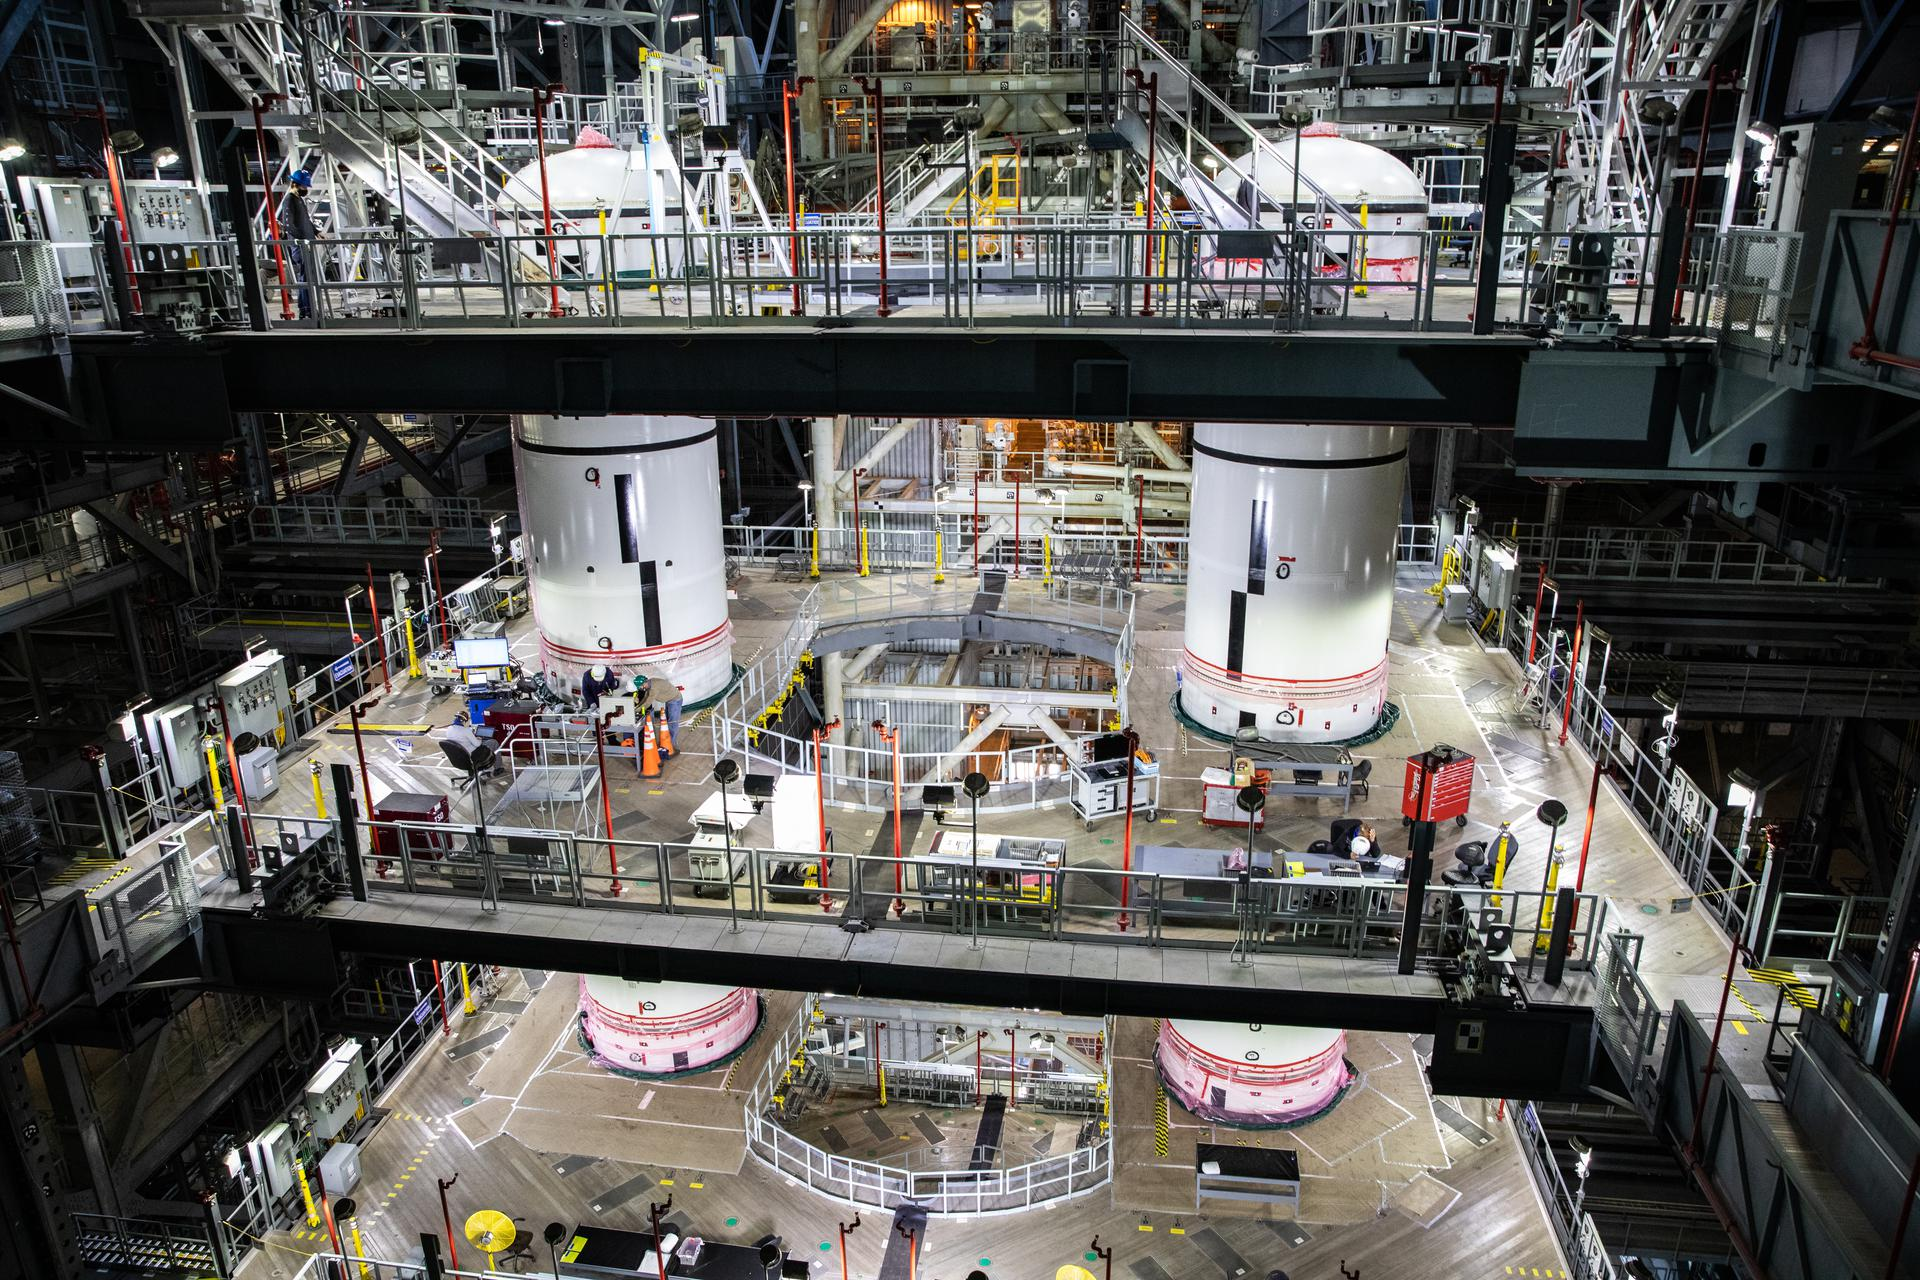 Space Launch System boosters for the Artemis I mission are stacked in the Vehicle Assembly Building.